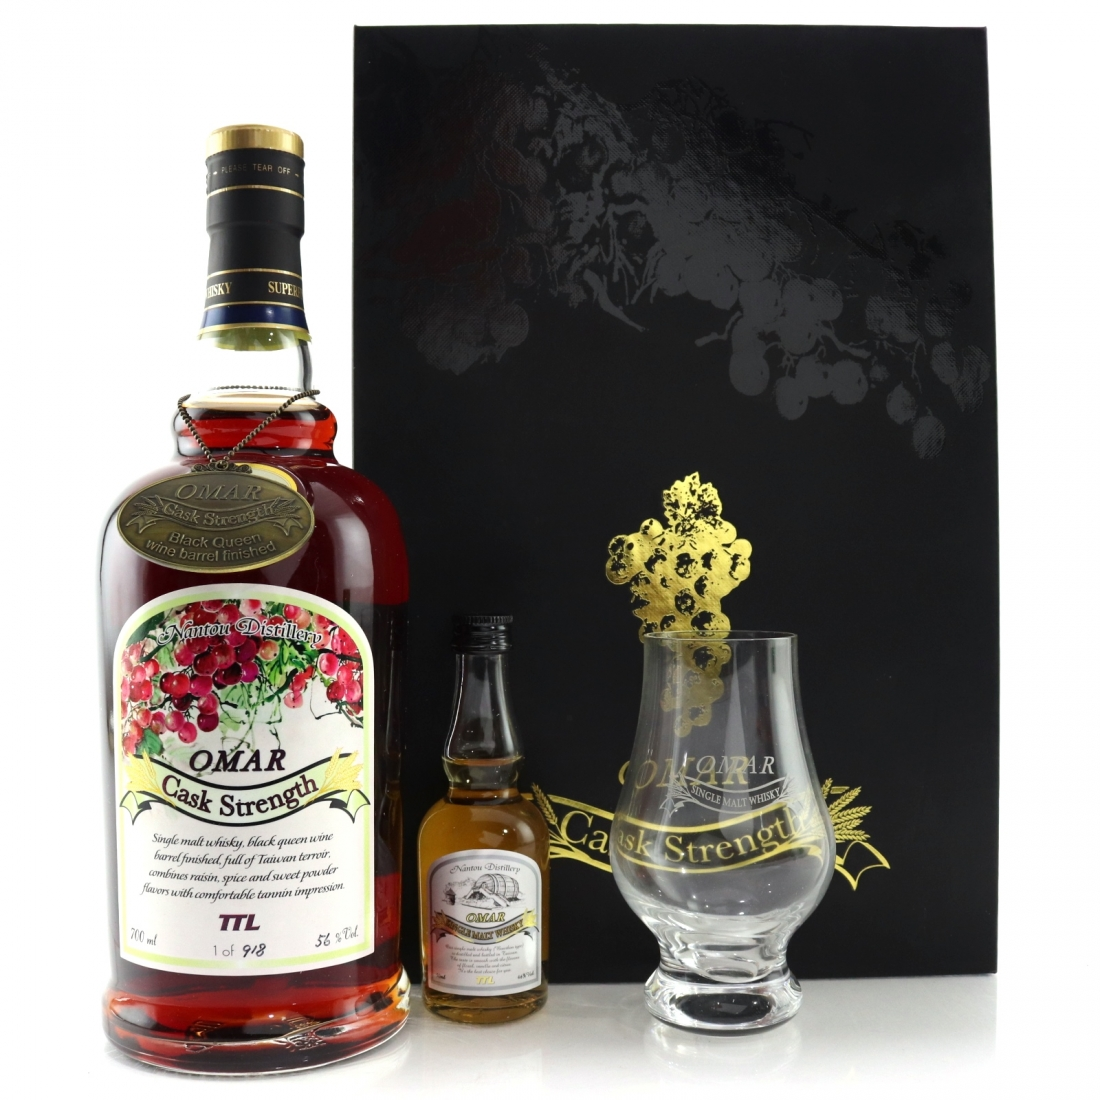 Nantou Omar Cask Strength Gift Pack / Black Queen Wine Finish with Miniature 5cl